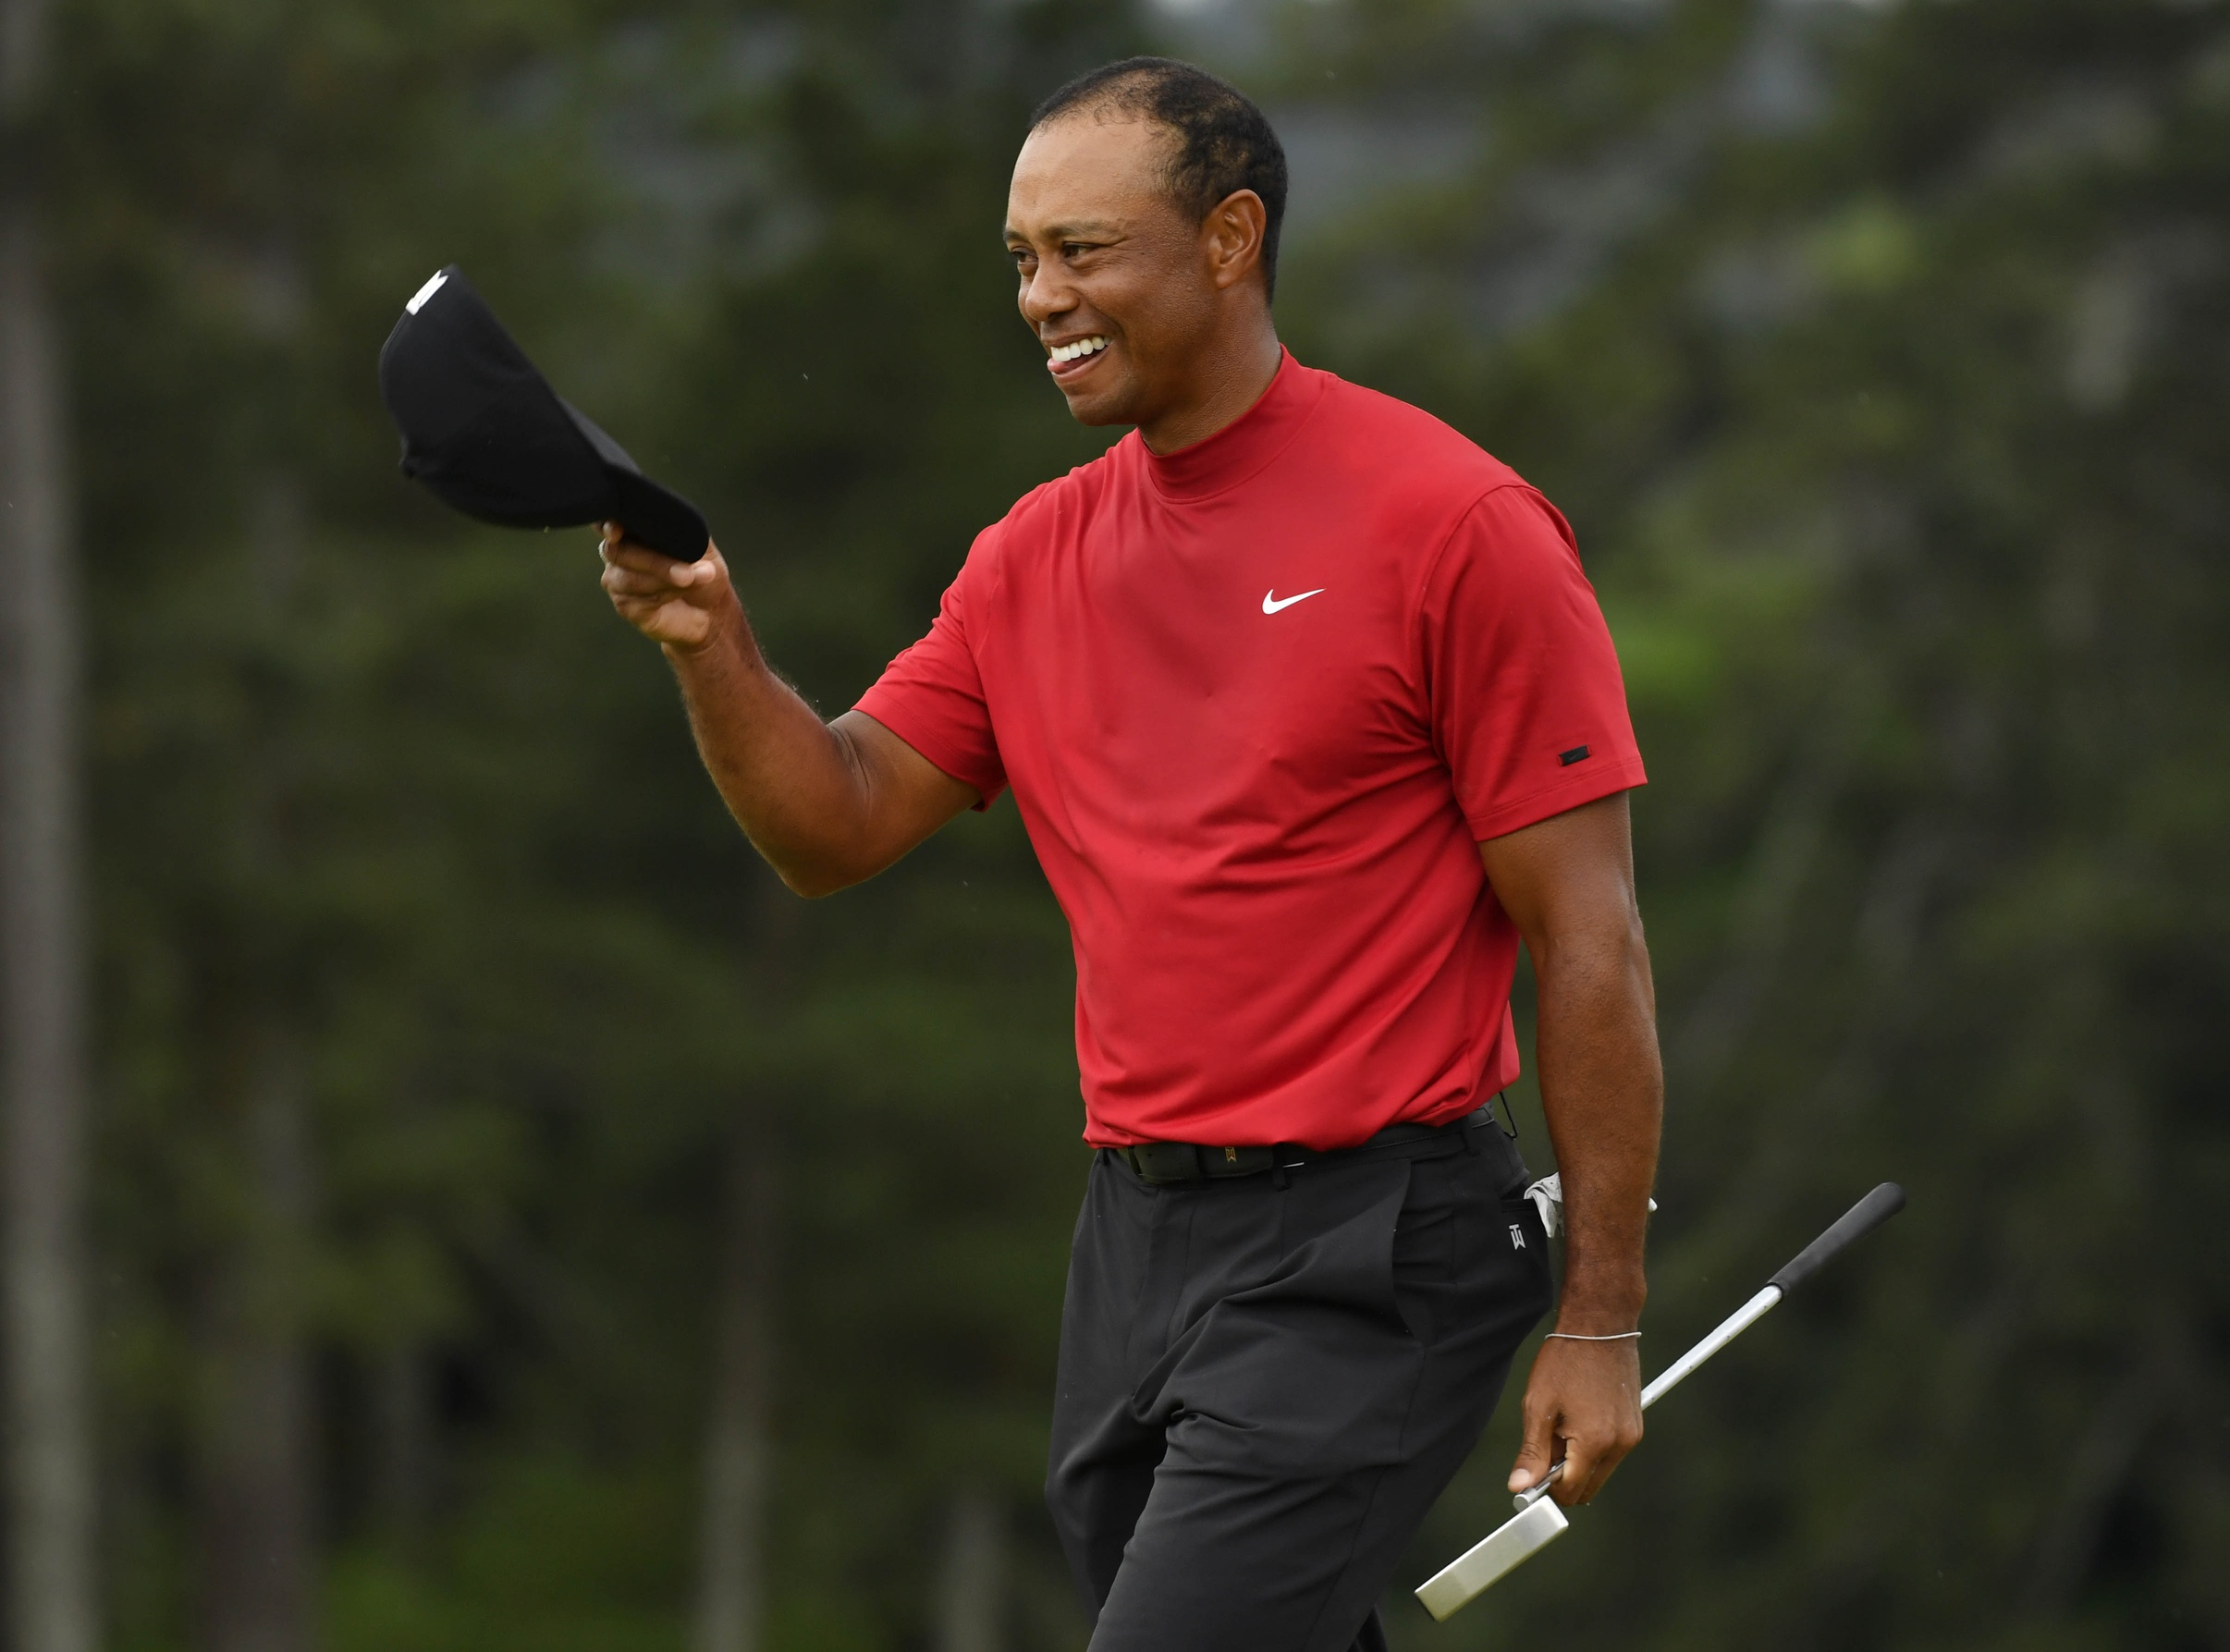 PGA Championship Odds 5/13/19, Tiger Woods favored entering the week